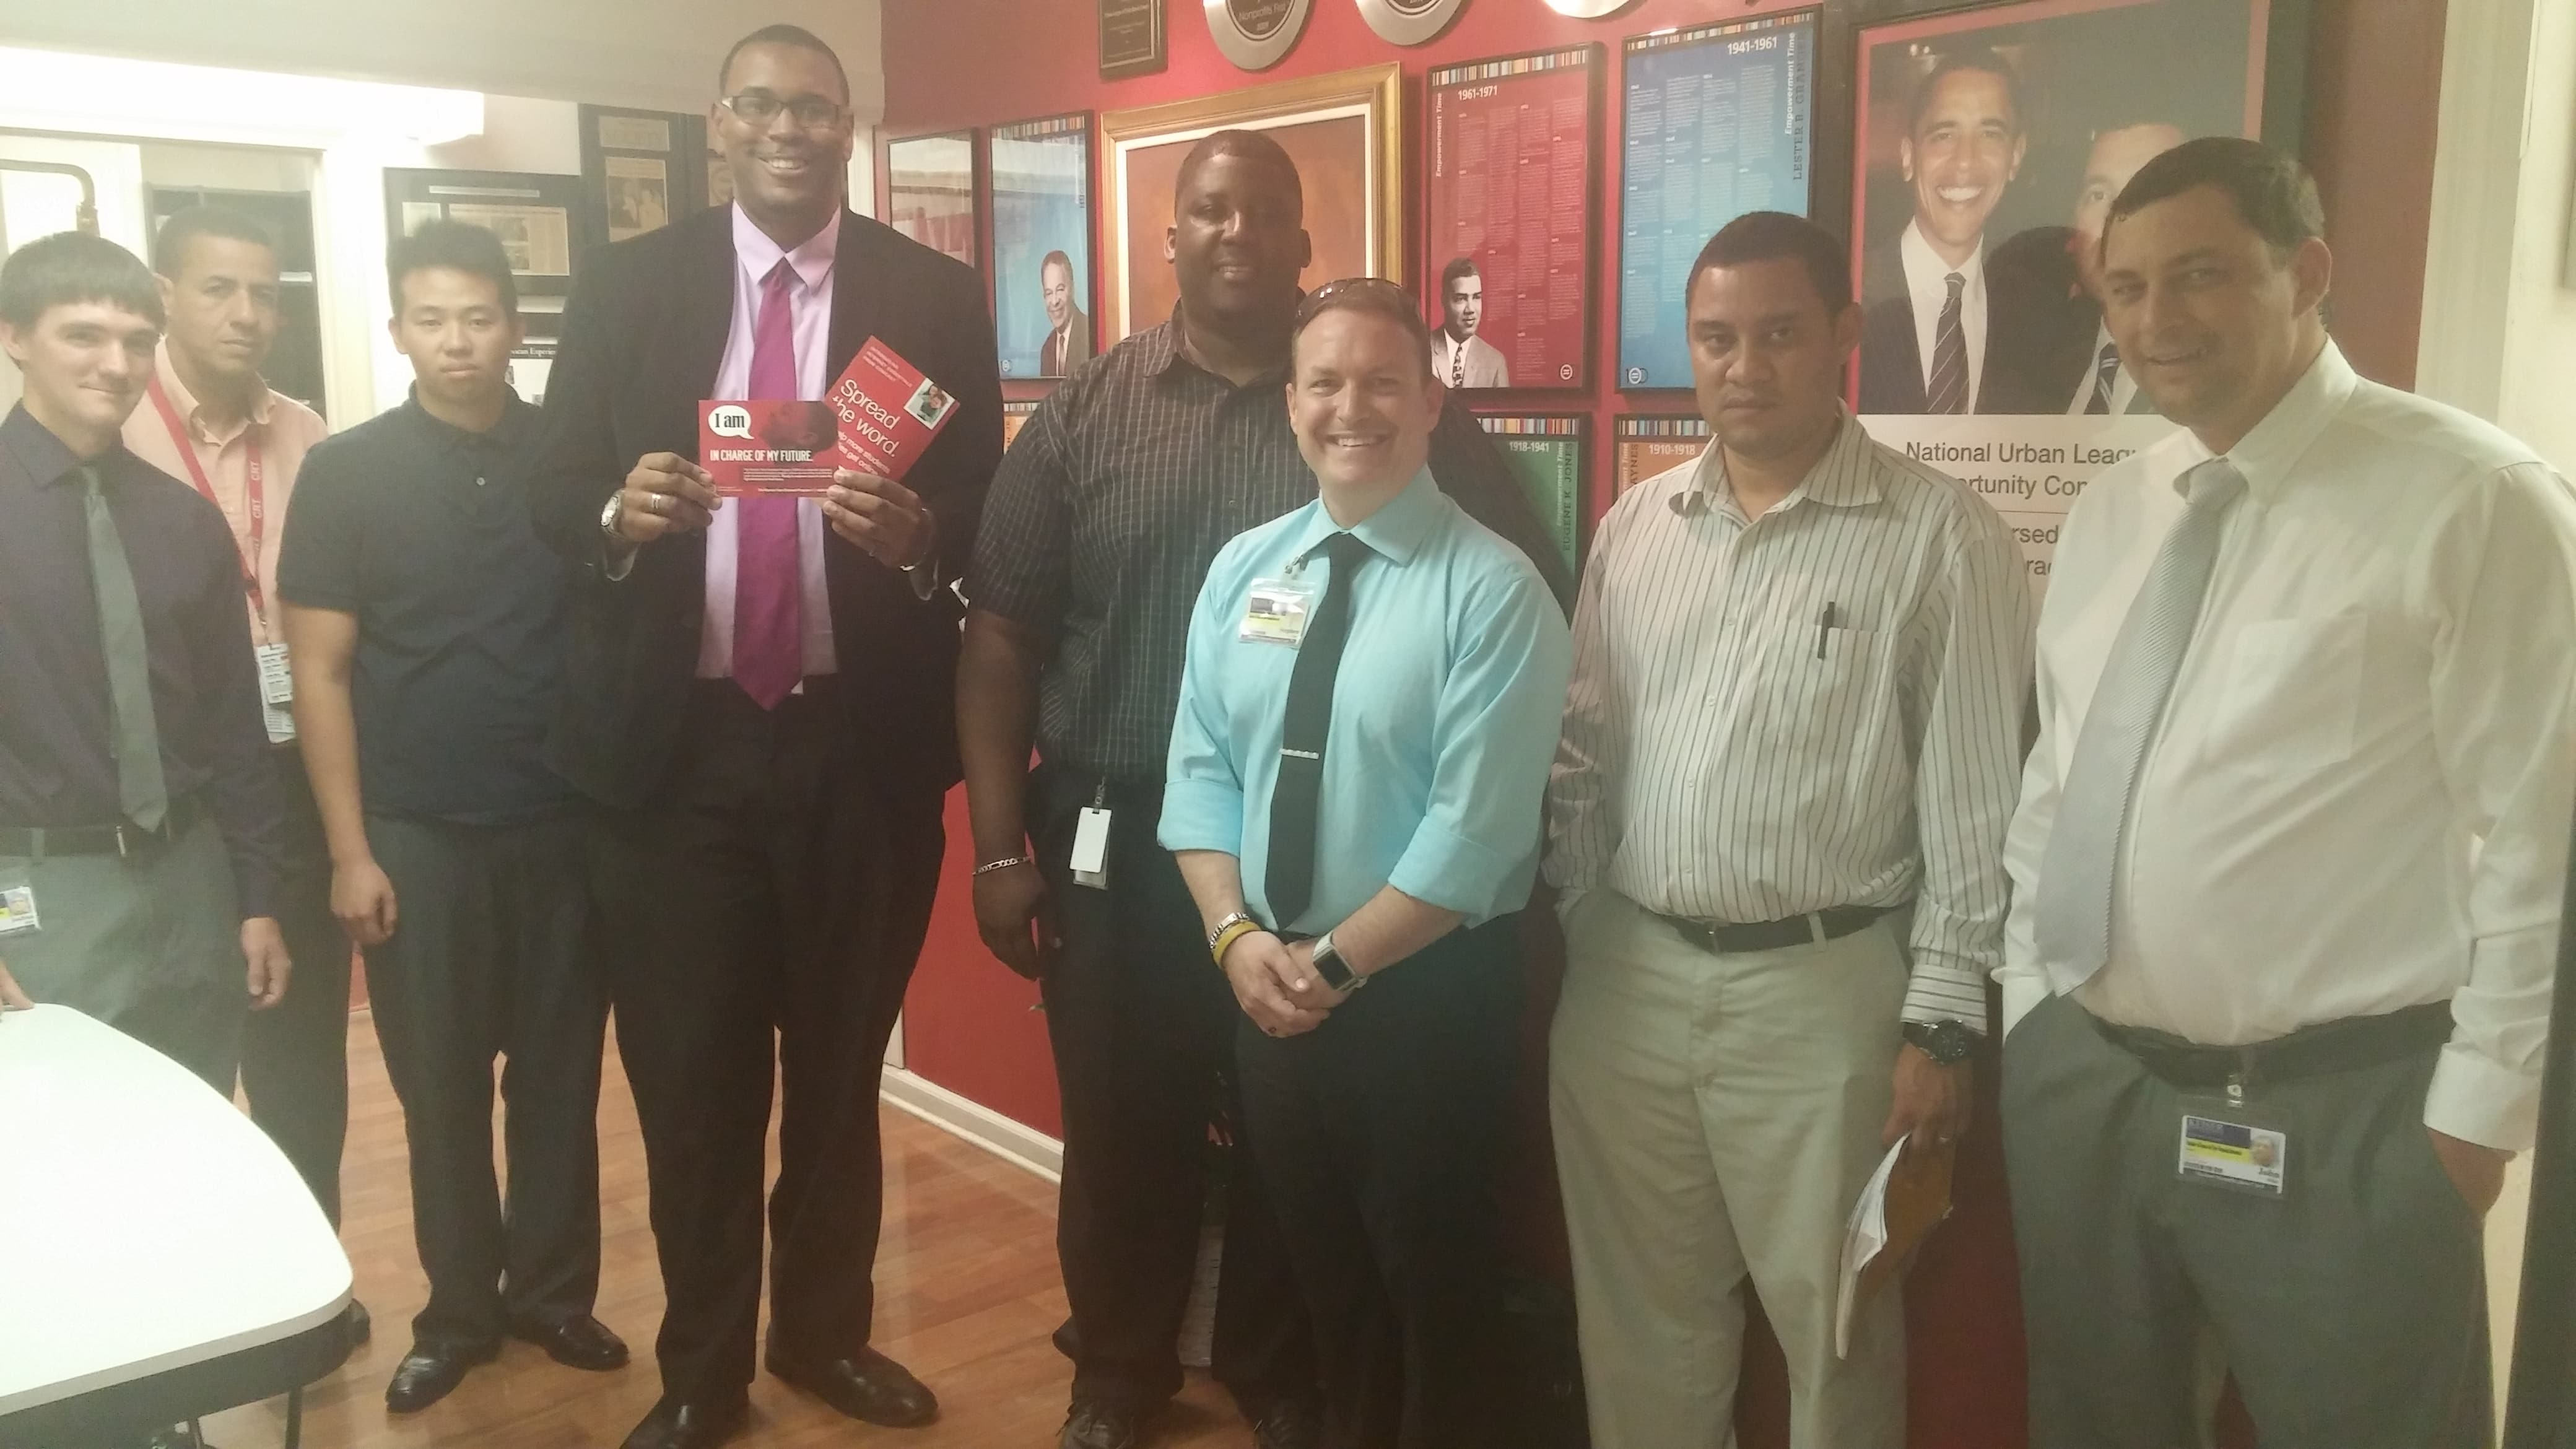 West Palm Beach IT Program Completes Technology Assessment of the Urban League